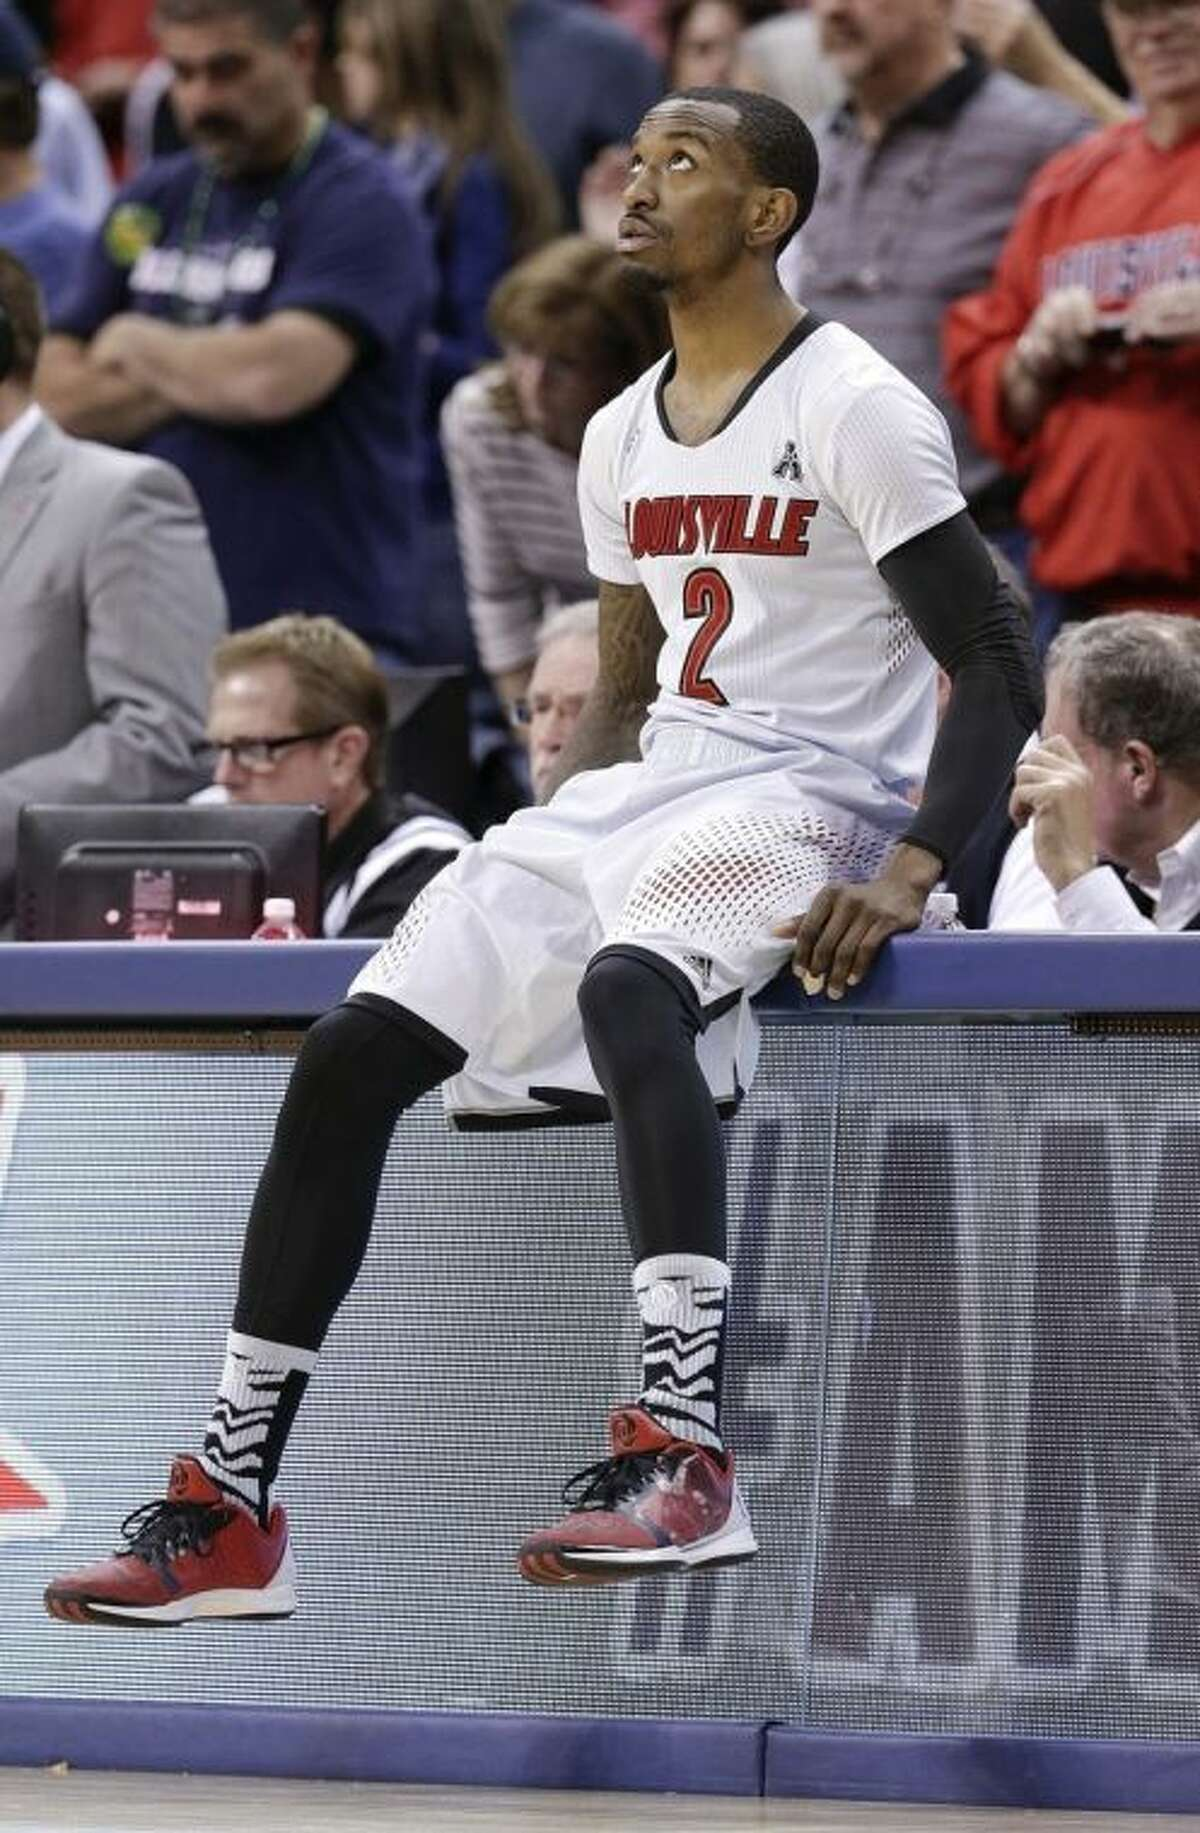 Louisville guard Russ Smith looks at the scoreboard as he waits for an NCAA college basketball game against Connecticut to get underway, in the finals of the American Athletic Conference men's tournament Saturday, March 15, 2014, in Memphis, Tenn. (AP Photo/Mark Humphrey)